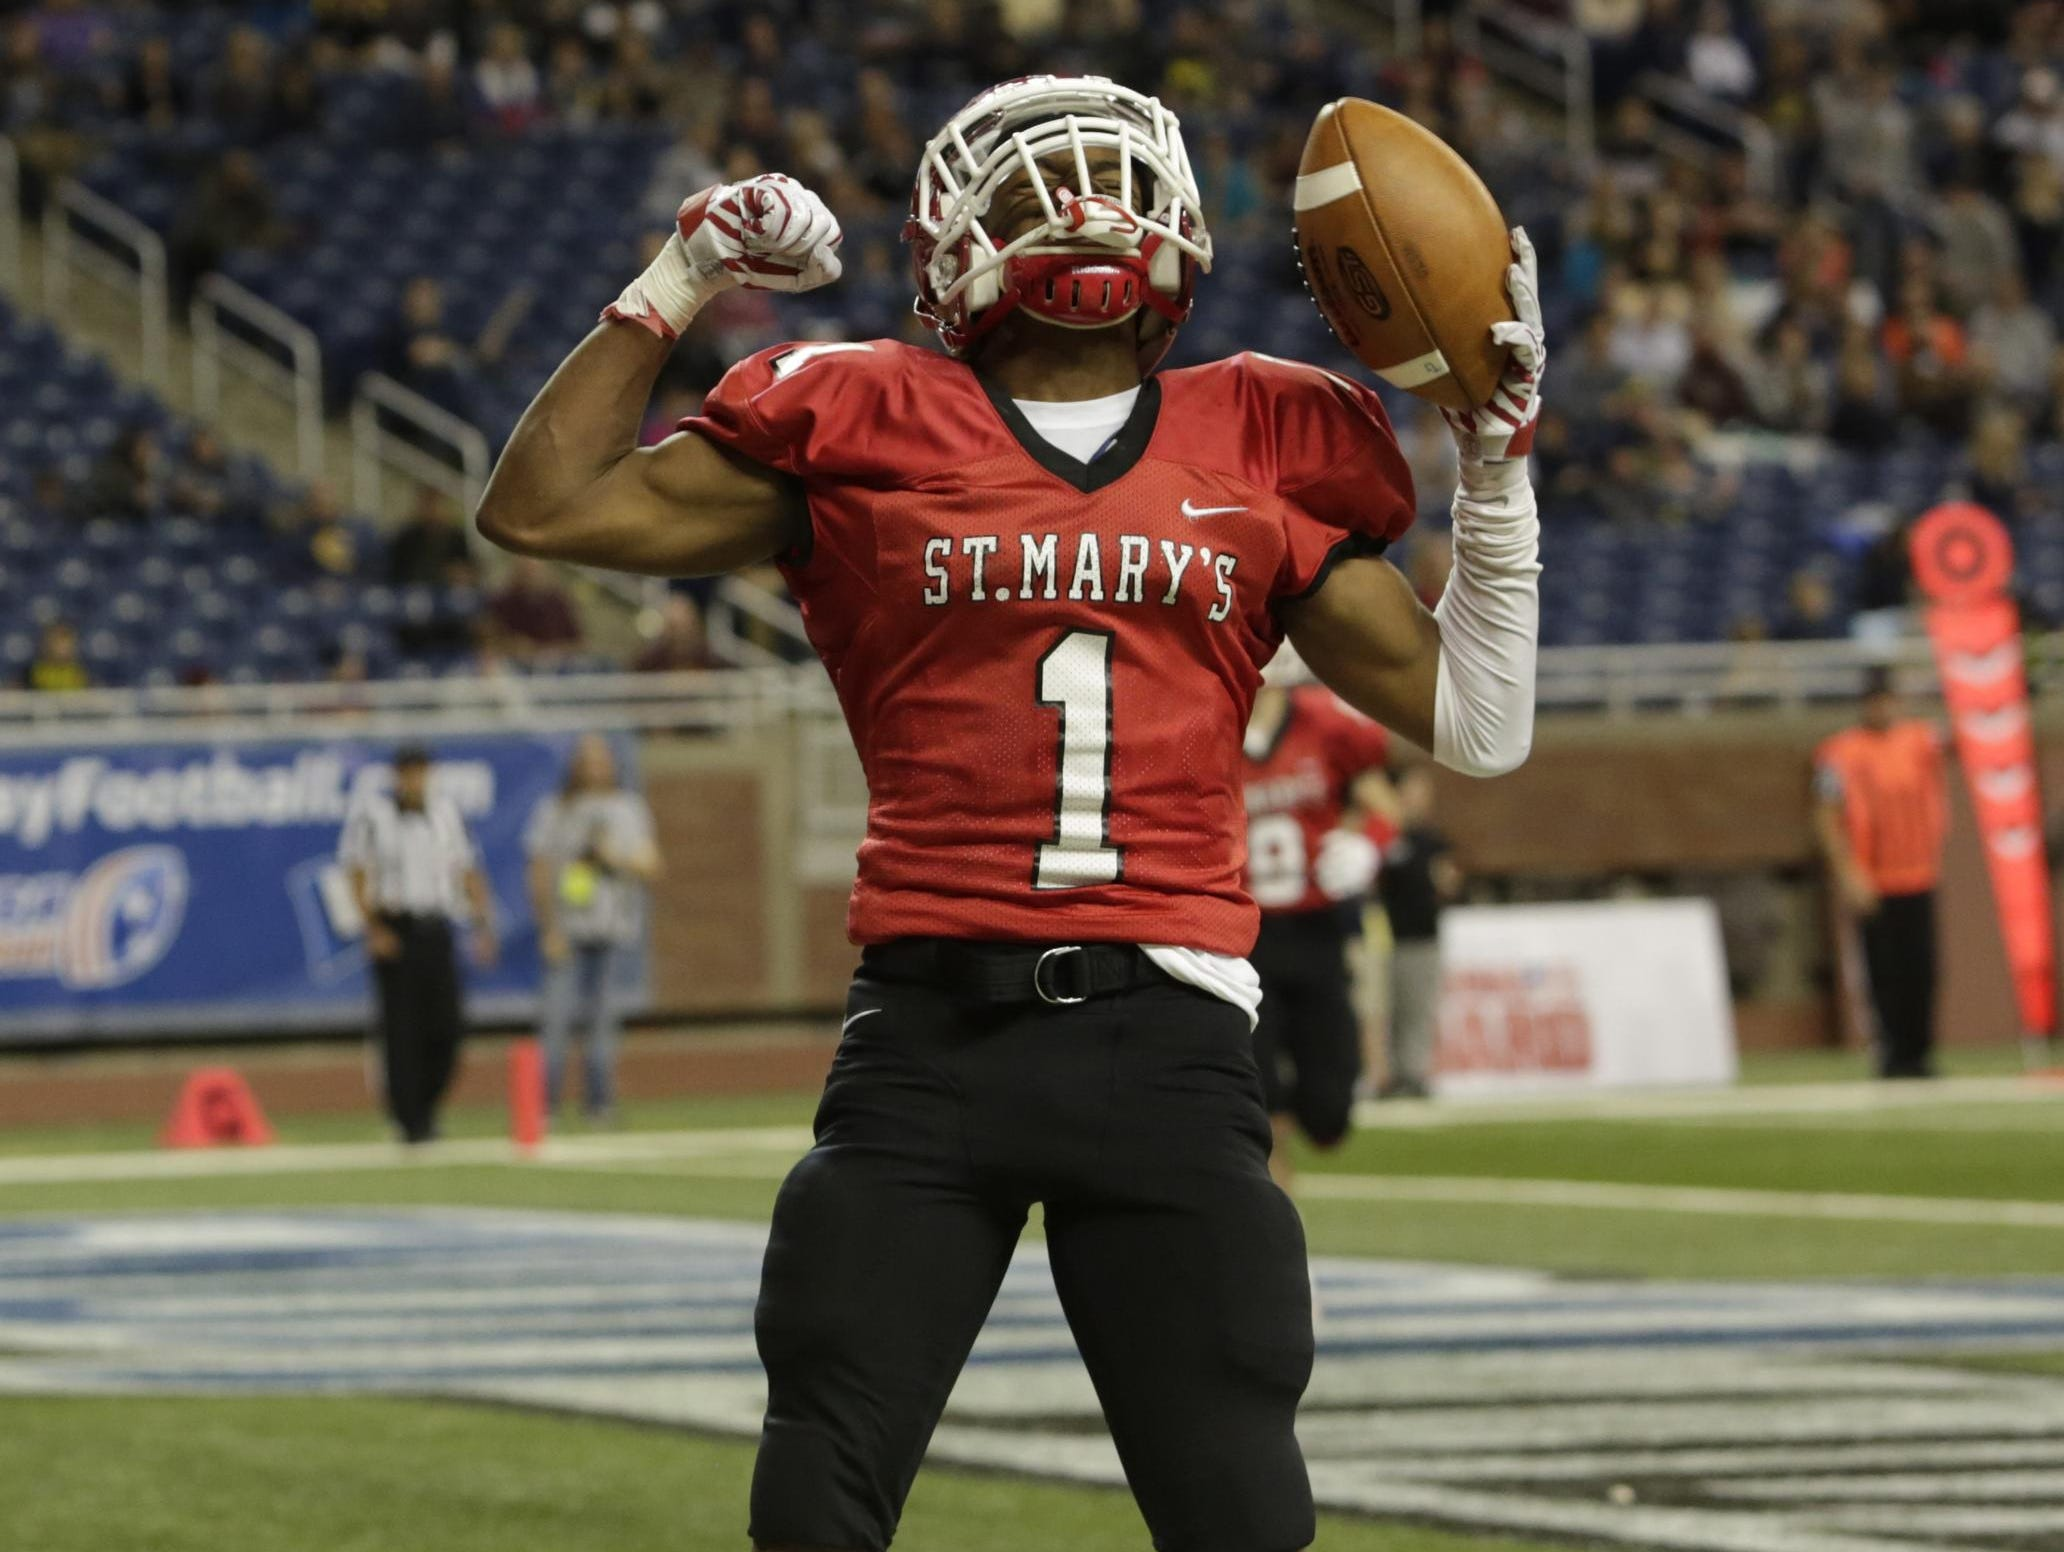 Orchard Lake St. Mary's receiver K. J. Hamler decided earlier this week to move to IMG Academy in Florida for his senior season.